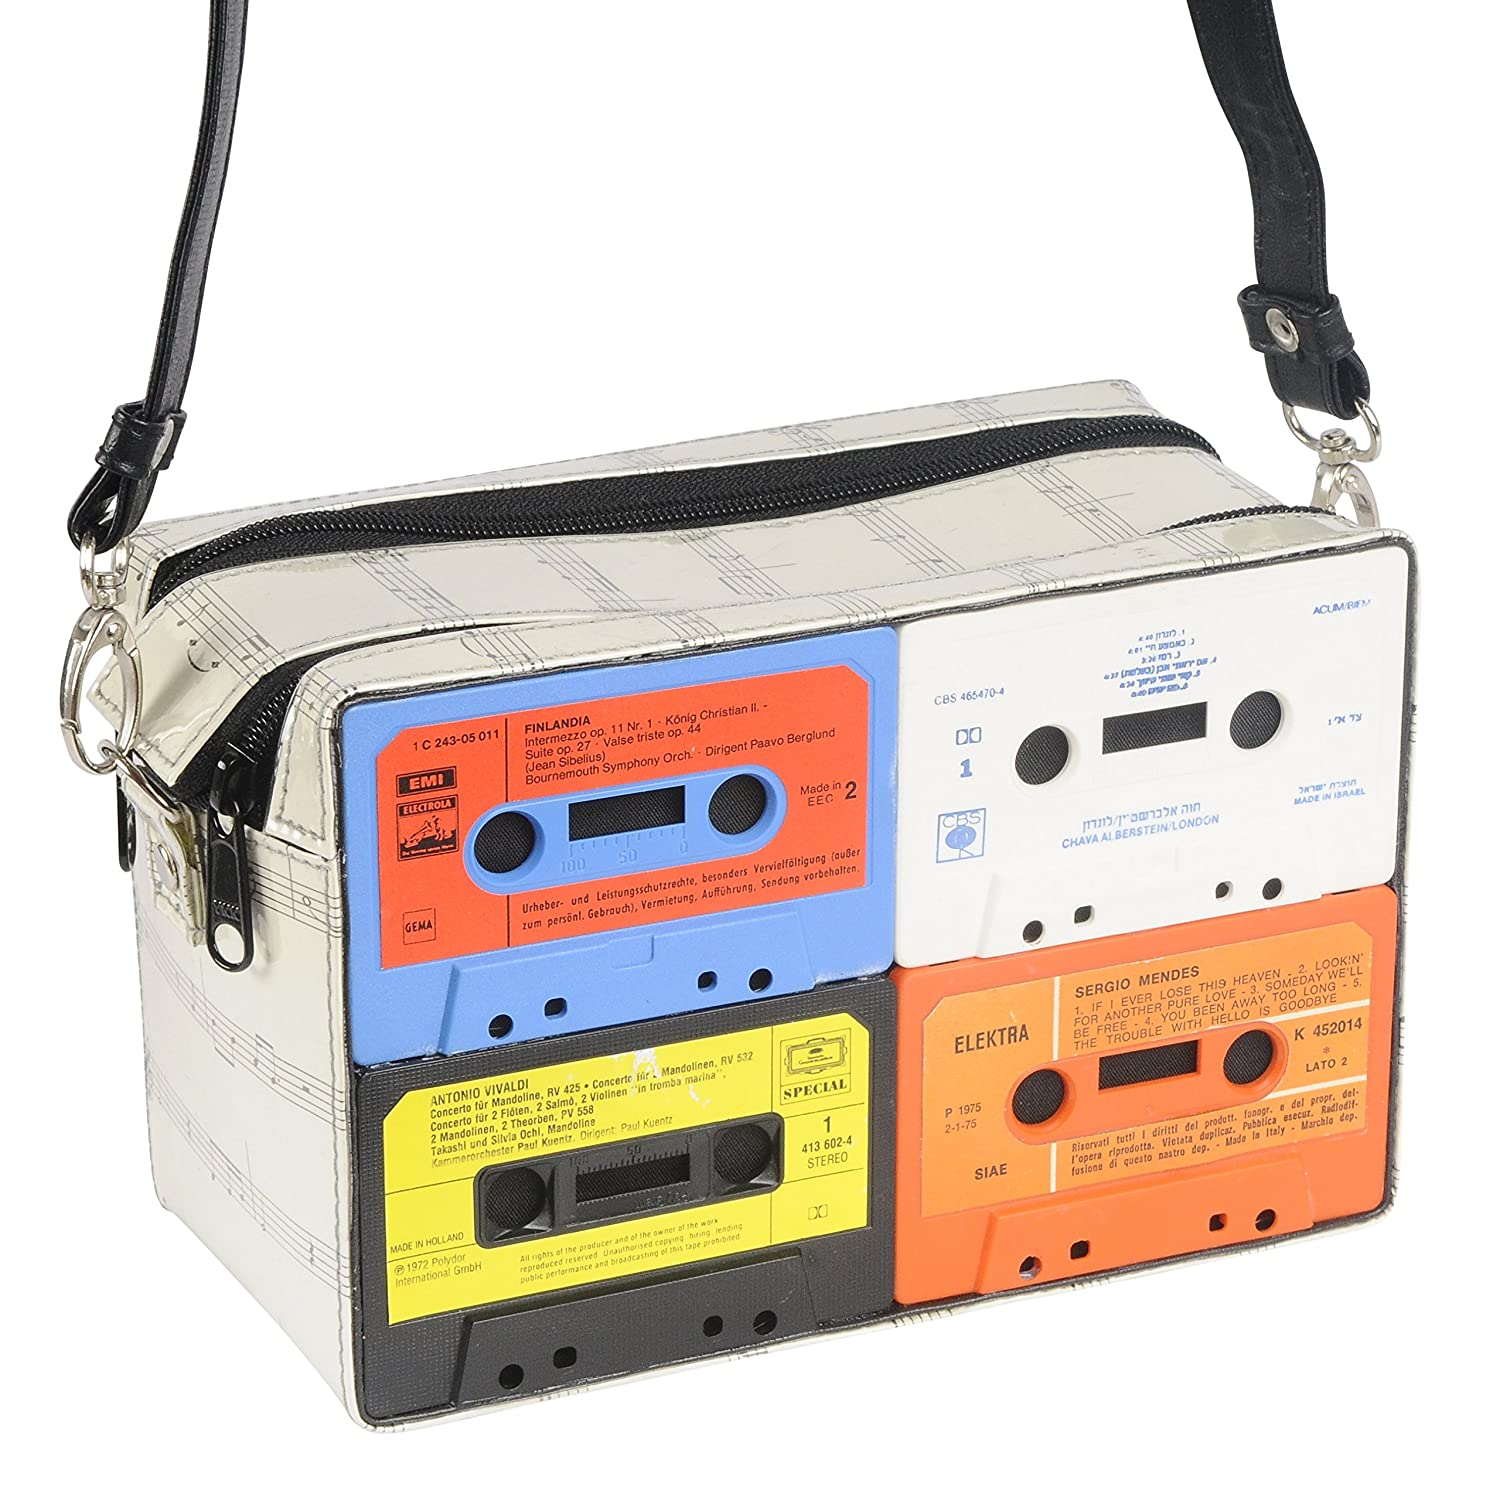 Music cassette crossbody bag - FREE SHIPPING - upcycled retro style eco friendly vegan handbag reclaimed vintage handmade gifts bag bags gift for nostalgic retros cassettes collection radio tape